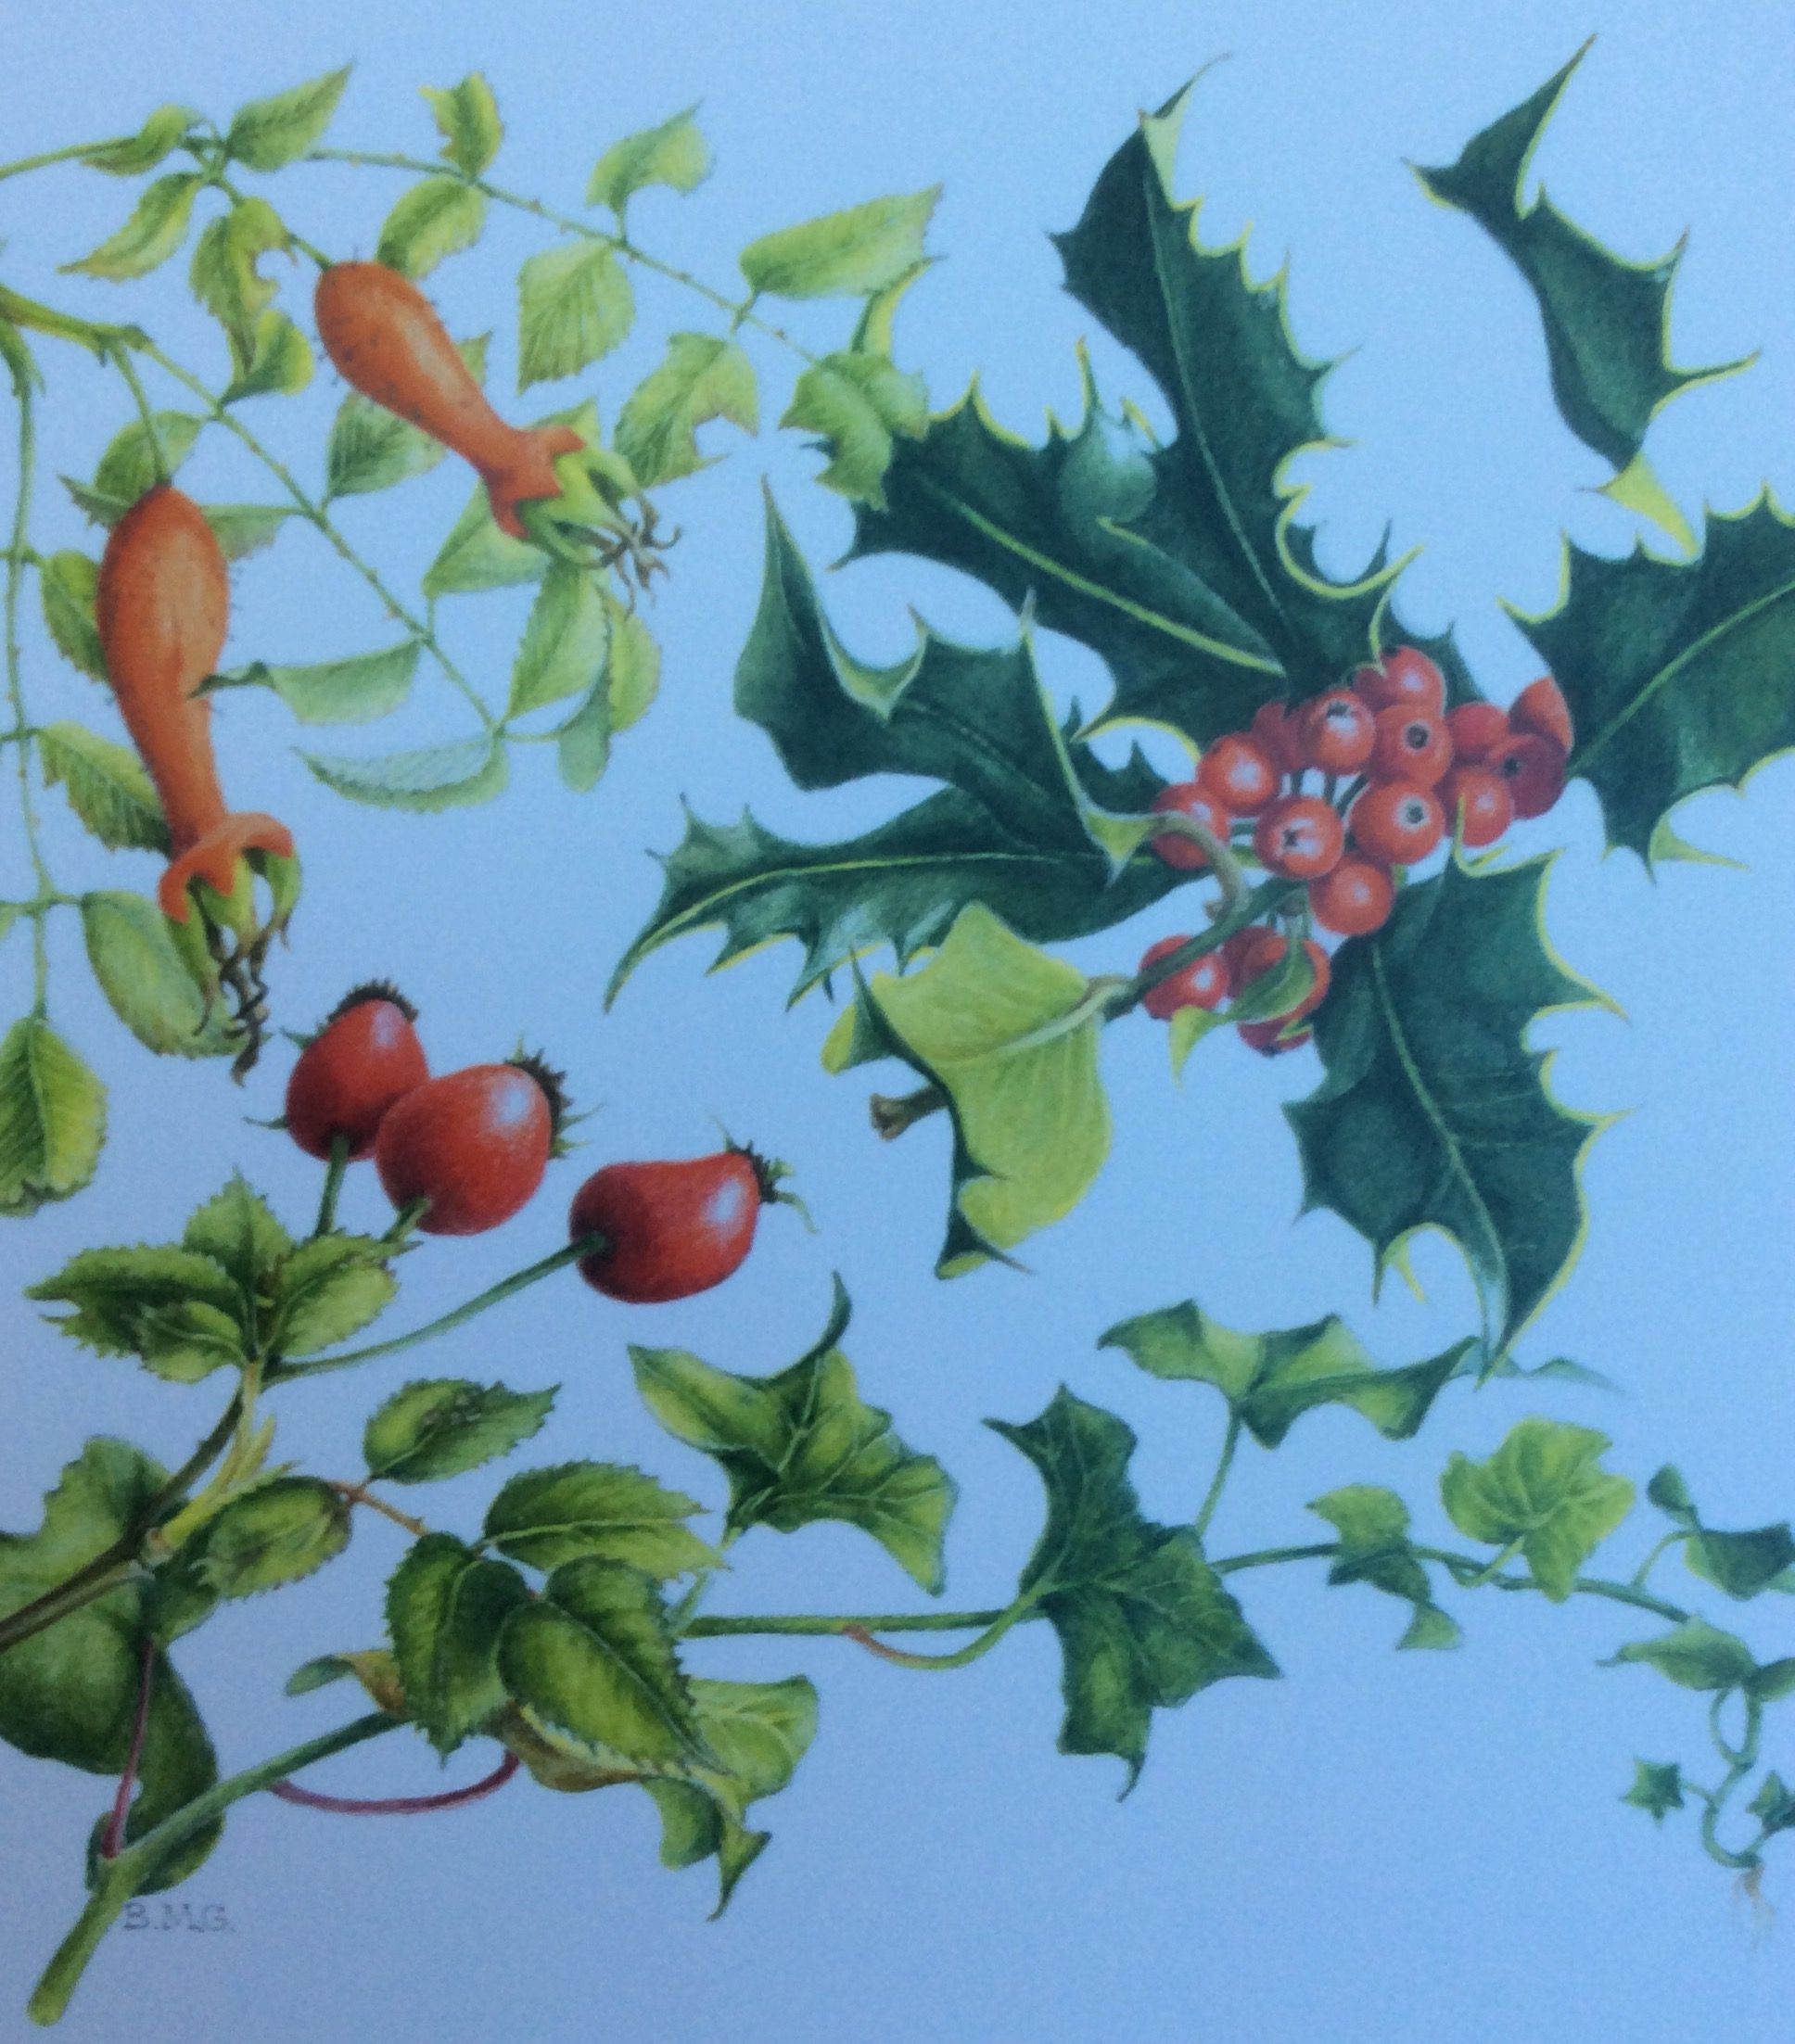 Pin by Ann Swan on Original Christmas Cards from students